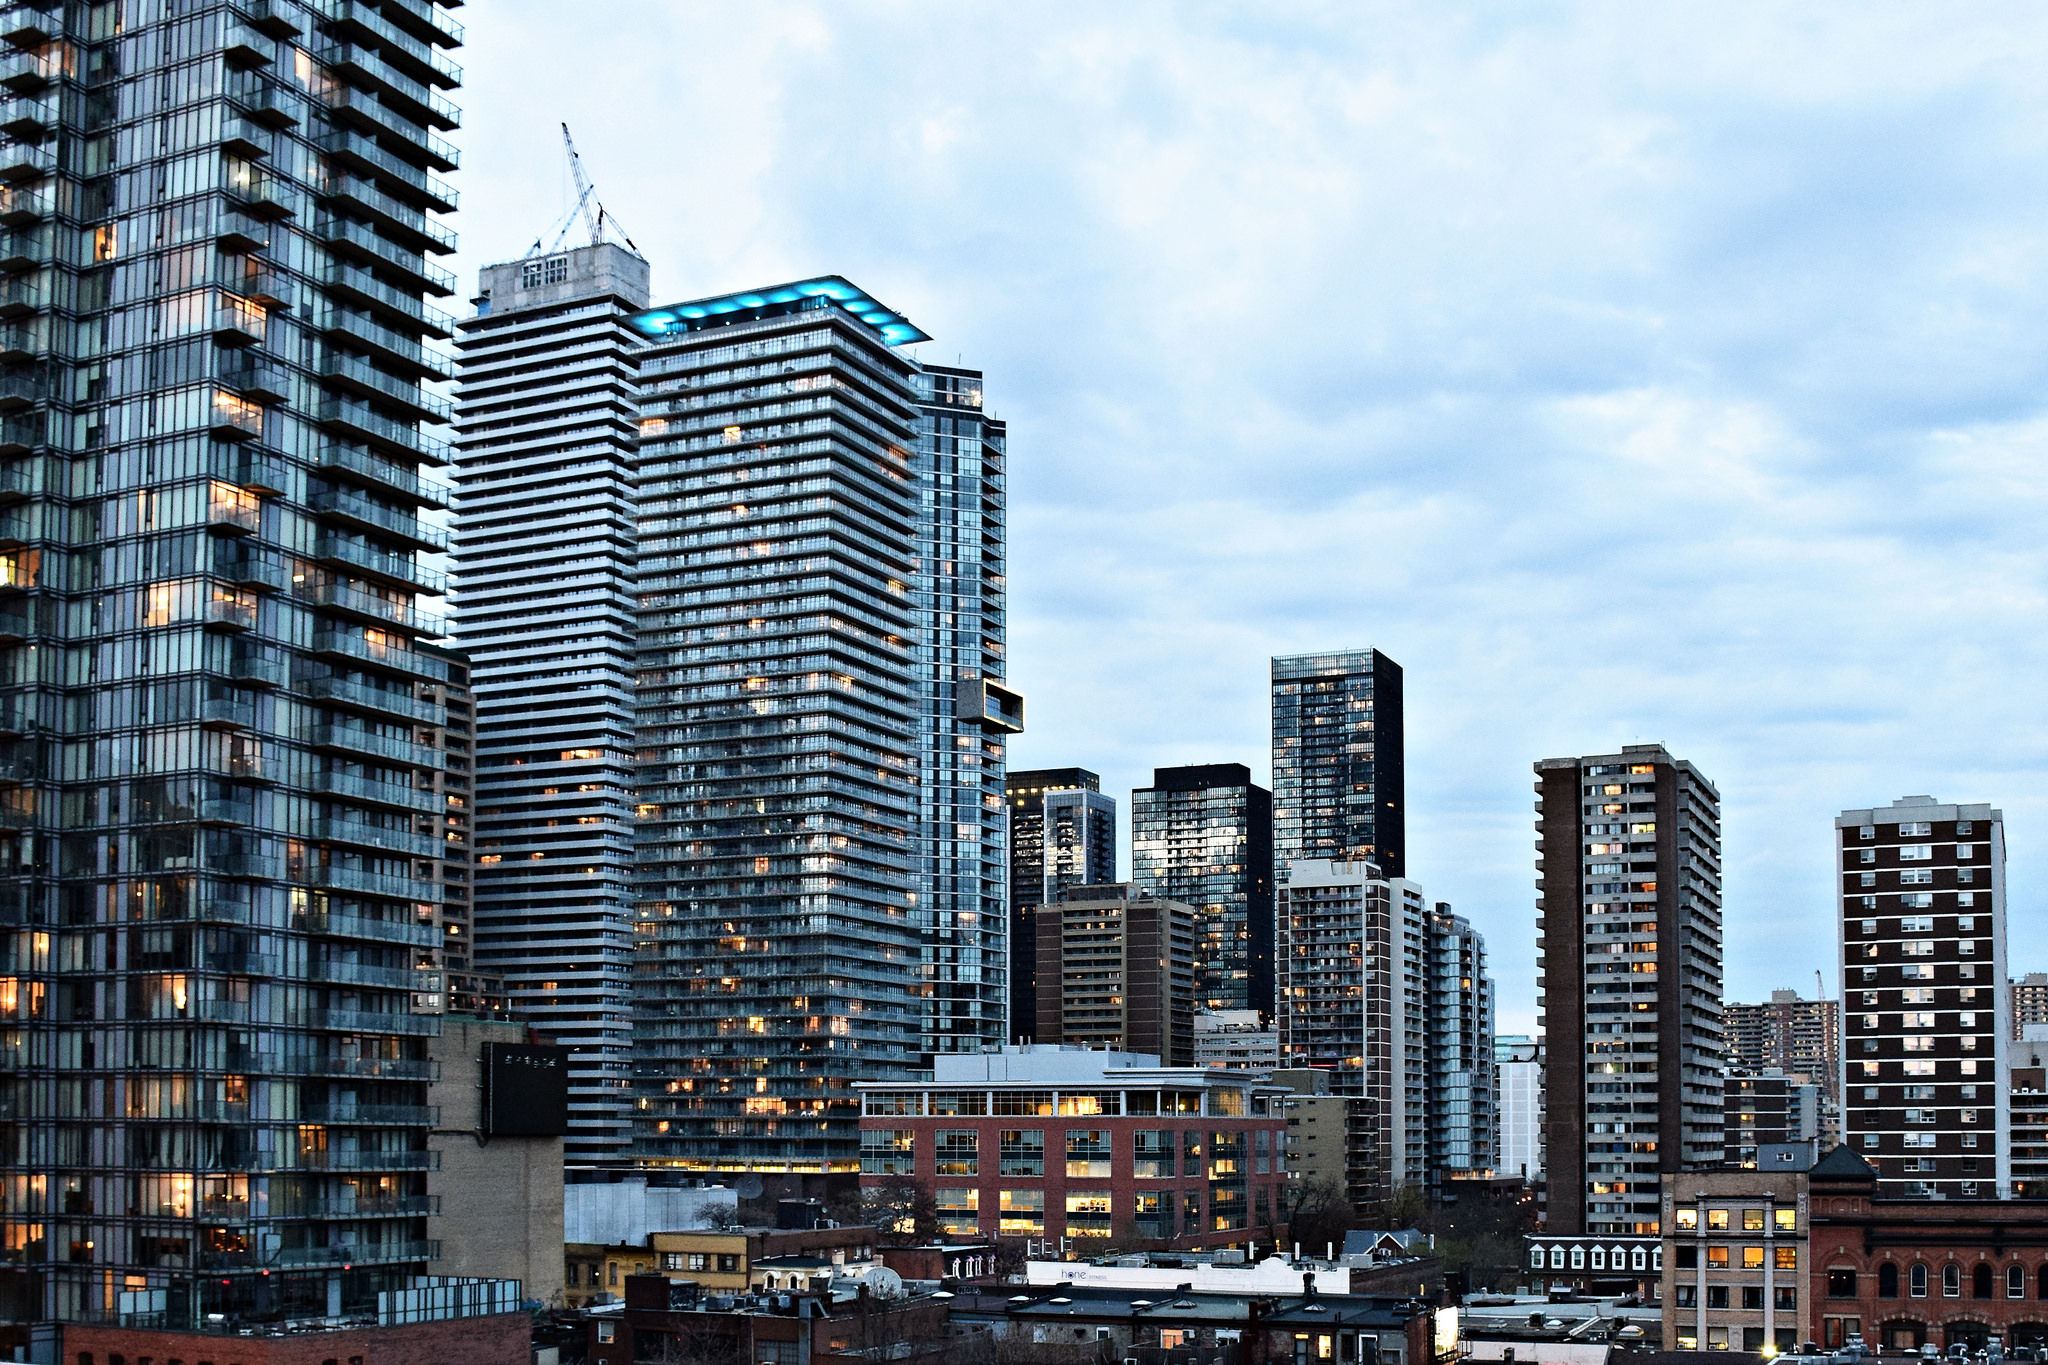 Toronto's condo market is ready for another record-breaking year (Image Credit: VV Nincic, Flickr)